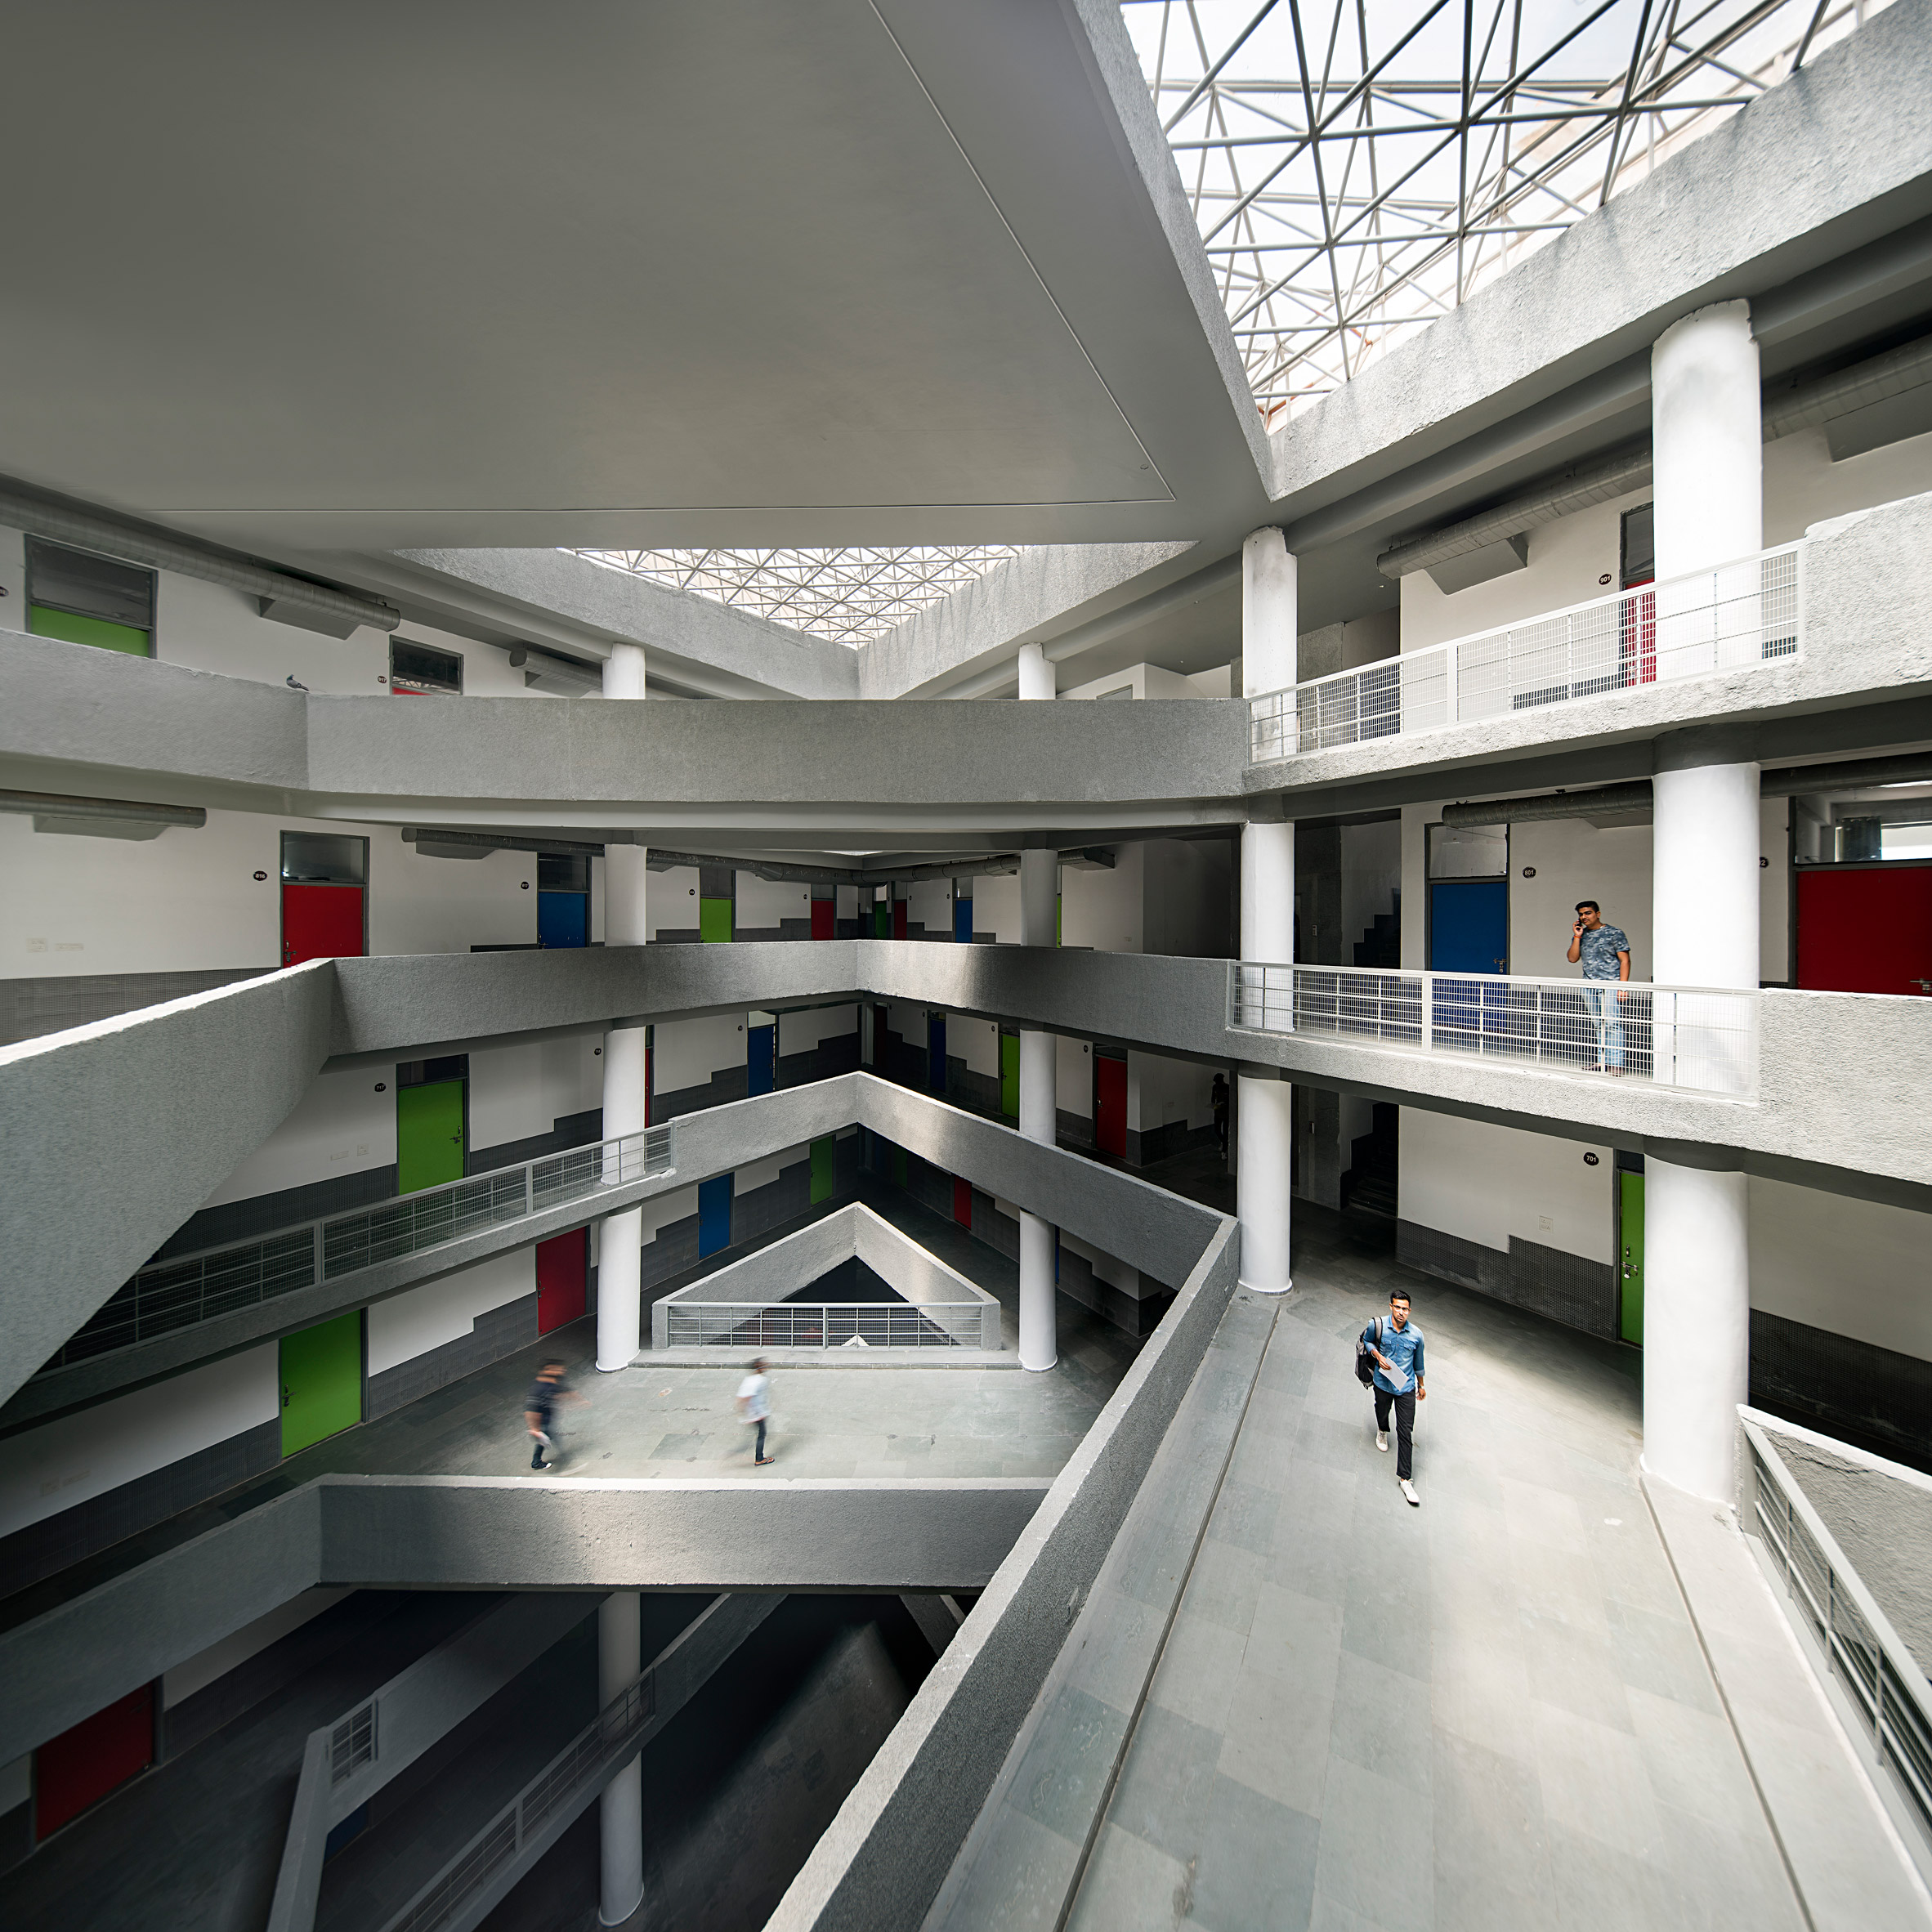 An atrium with crisscrossing bridges